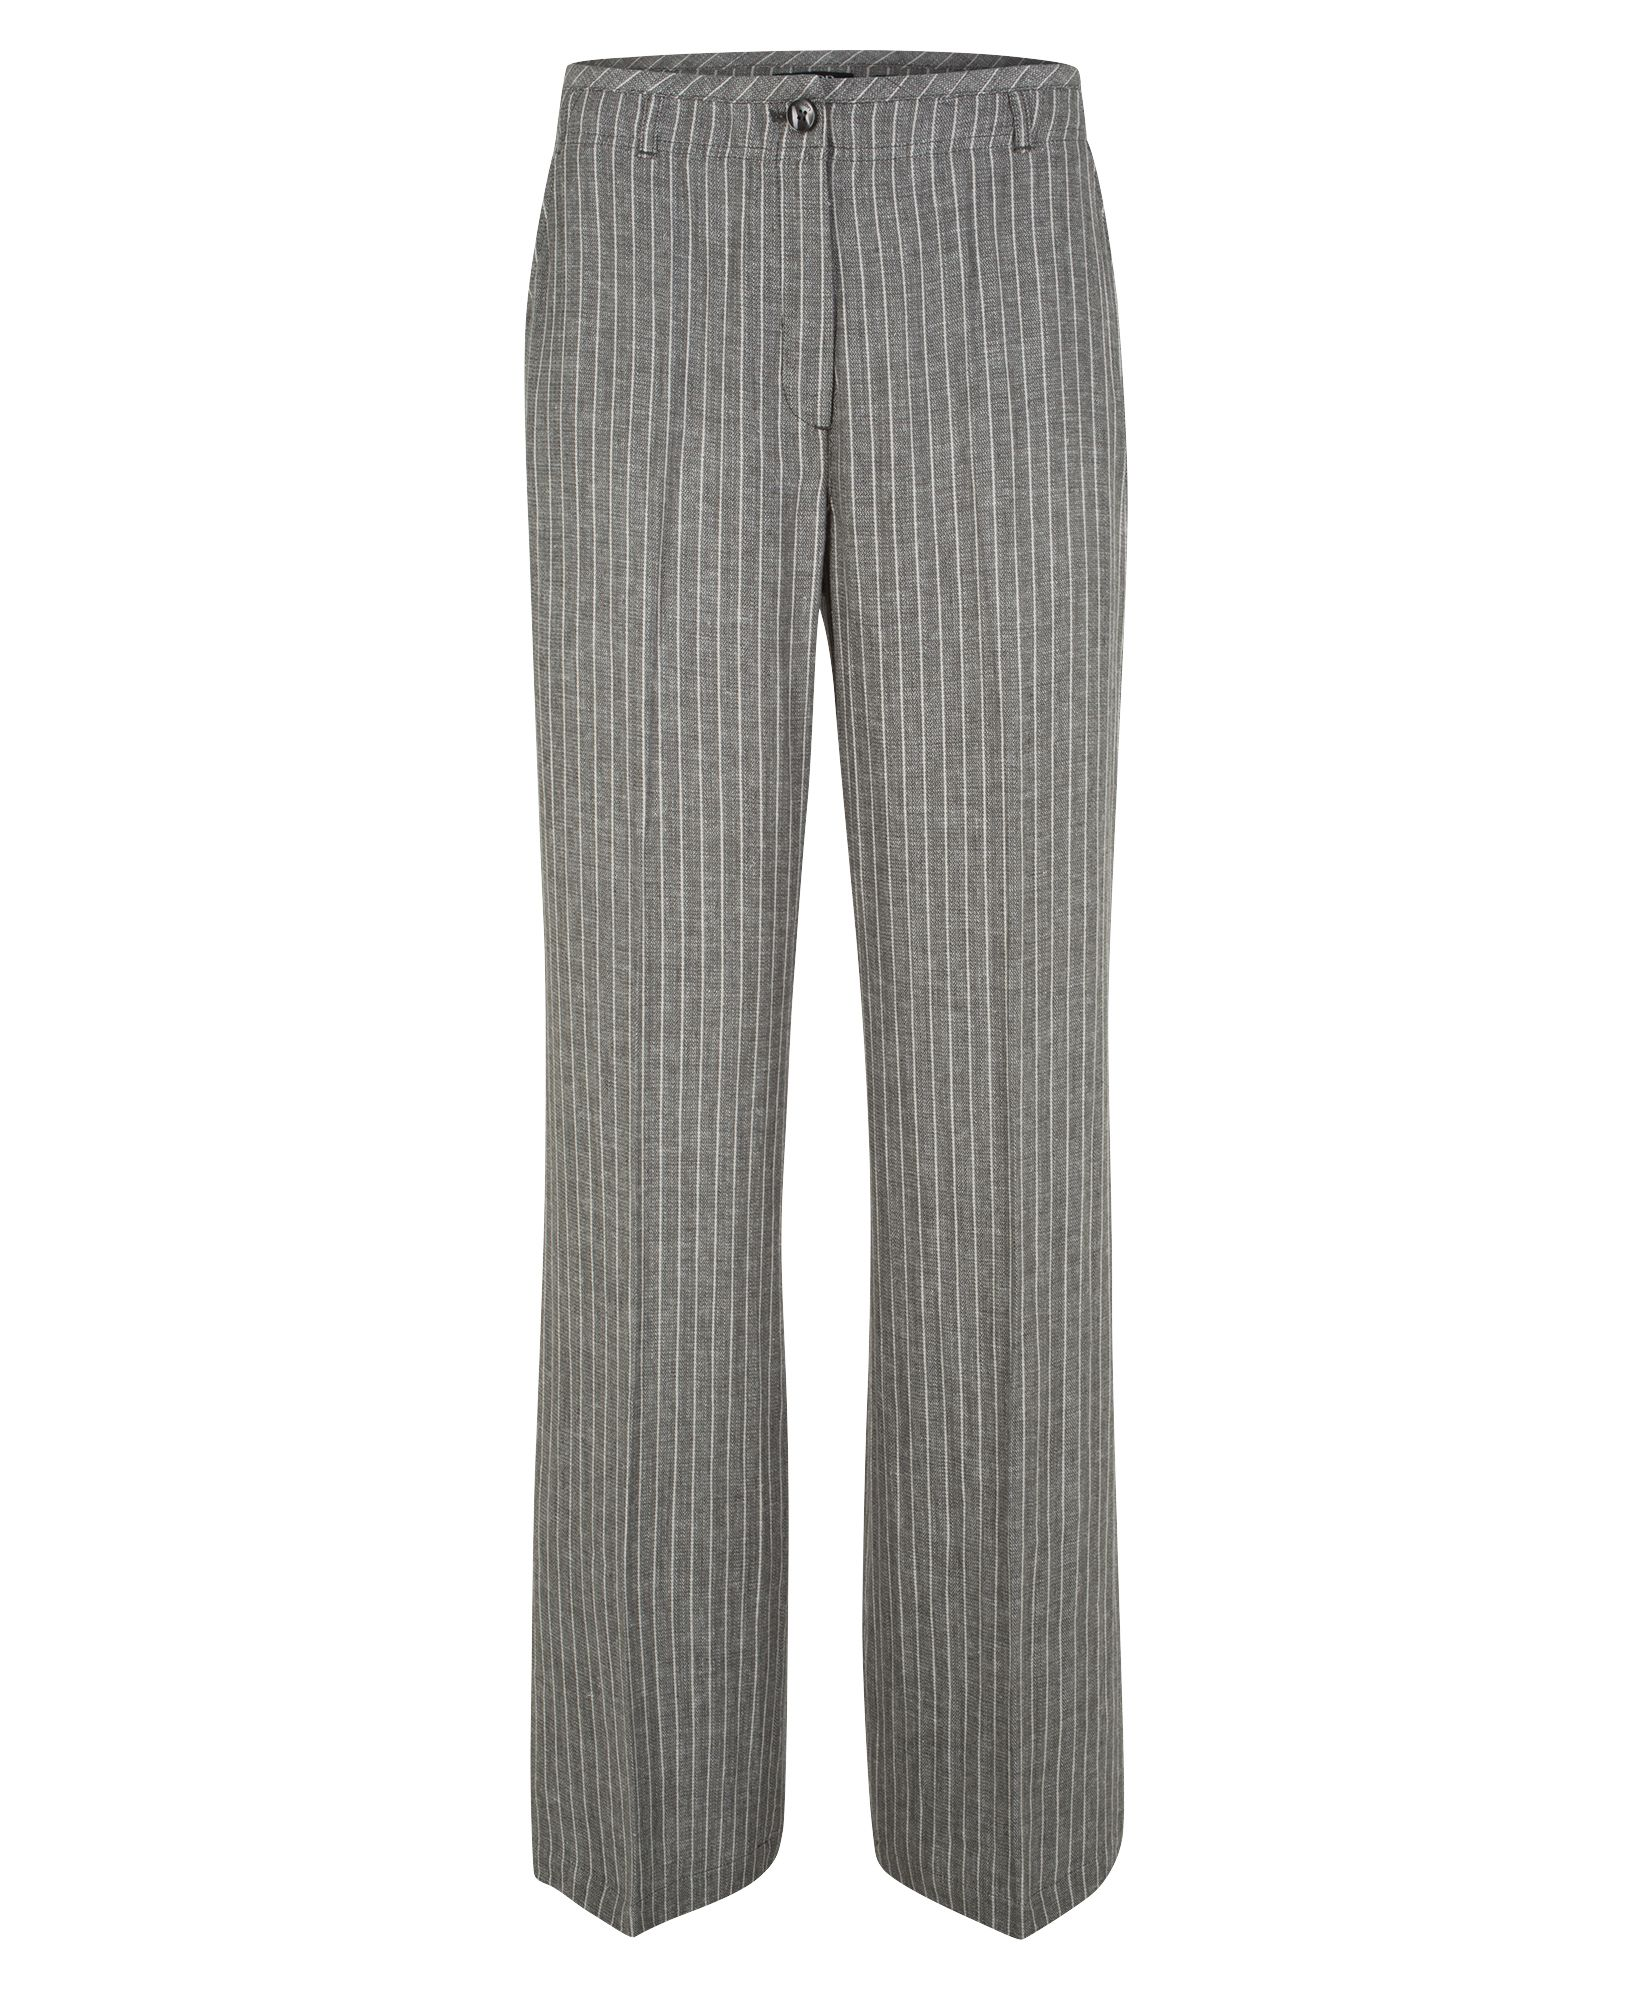 Olsen Trousers Anna, Grey